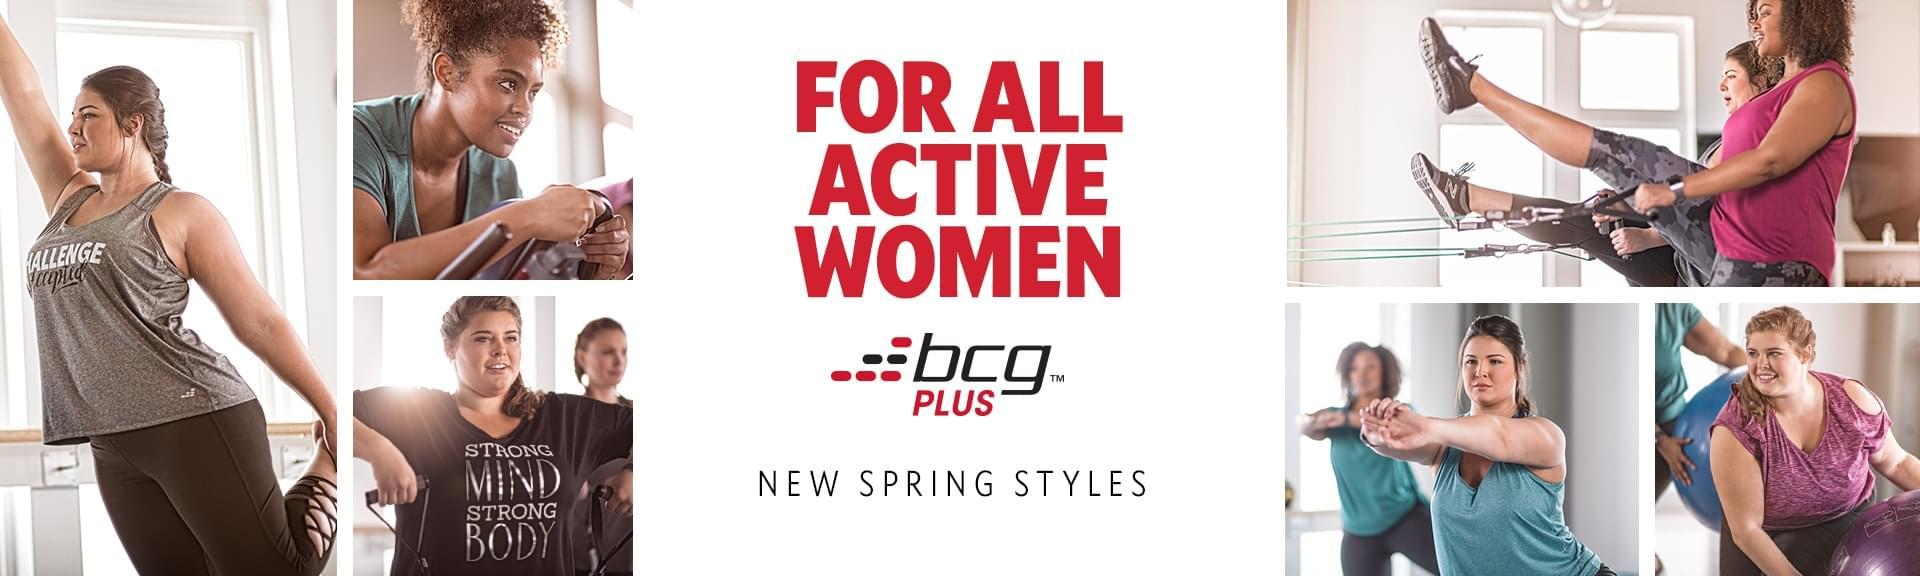 For all active women | BCG Plus | New Spring Styles